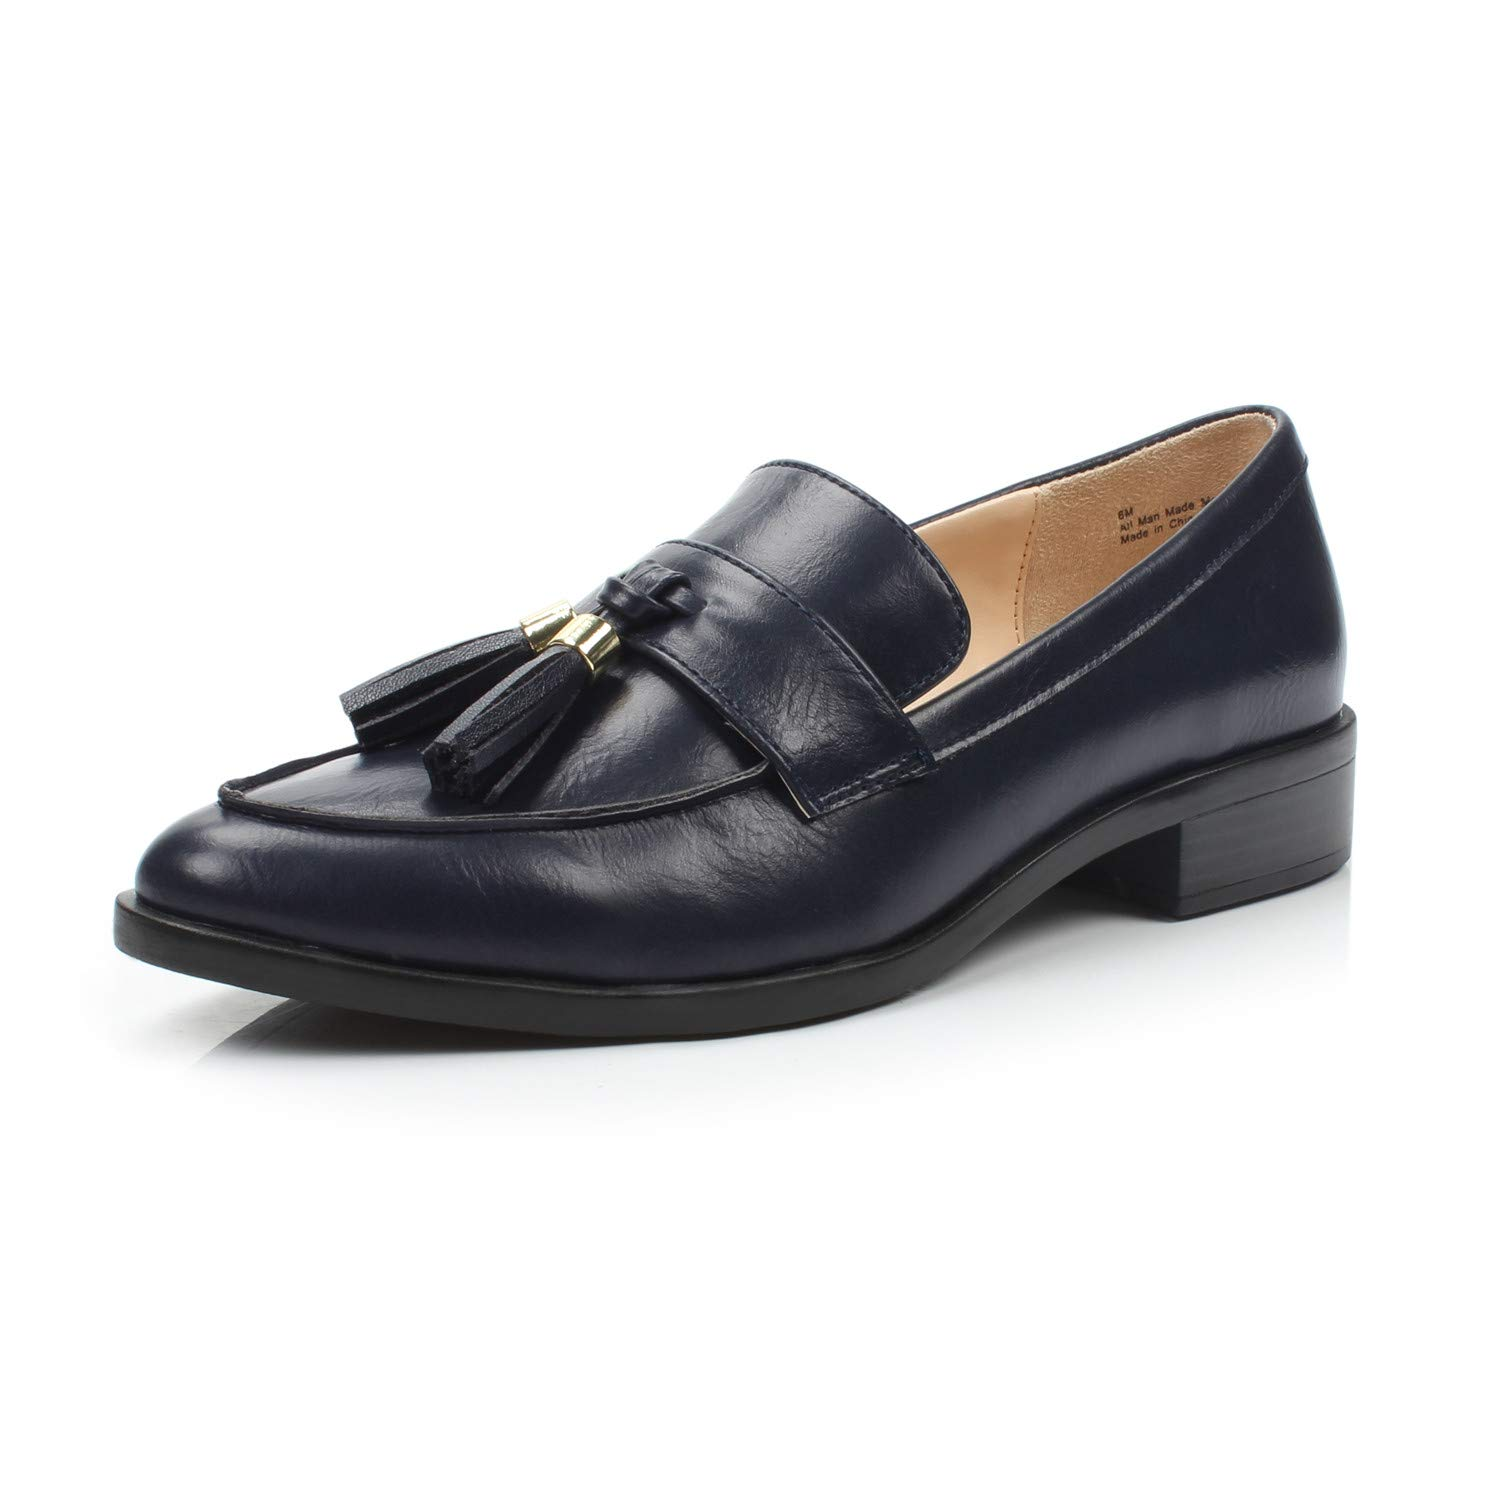 Bertha Navy DUNION Women's Brandon Chain Decorated Penny Loafers Low Heels Almond Toe Casual Daily shoes